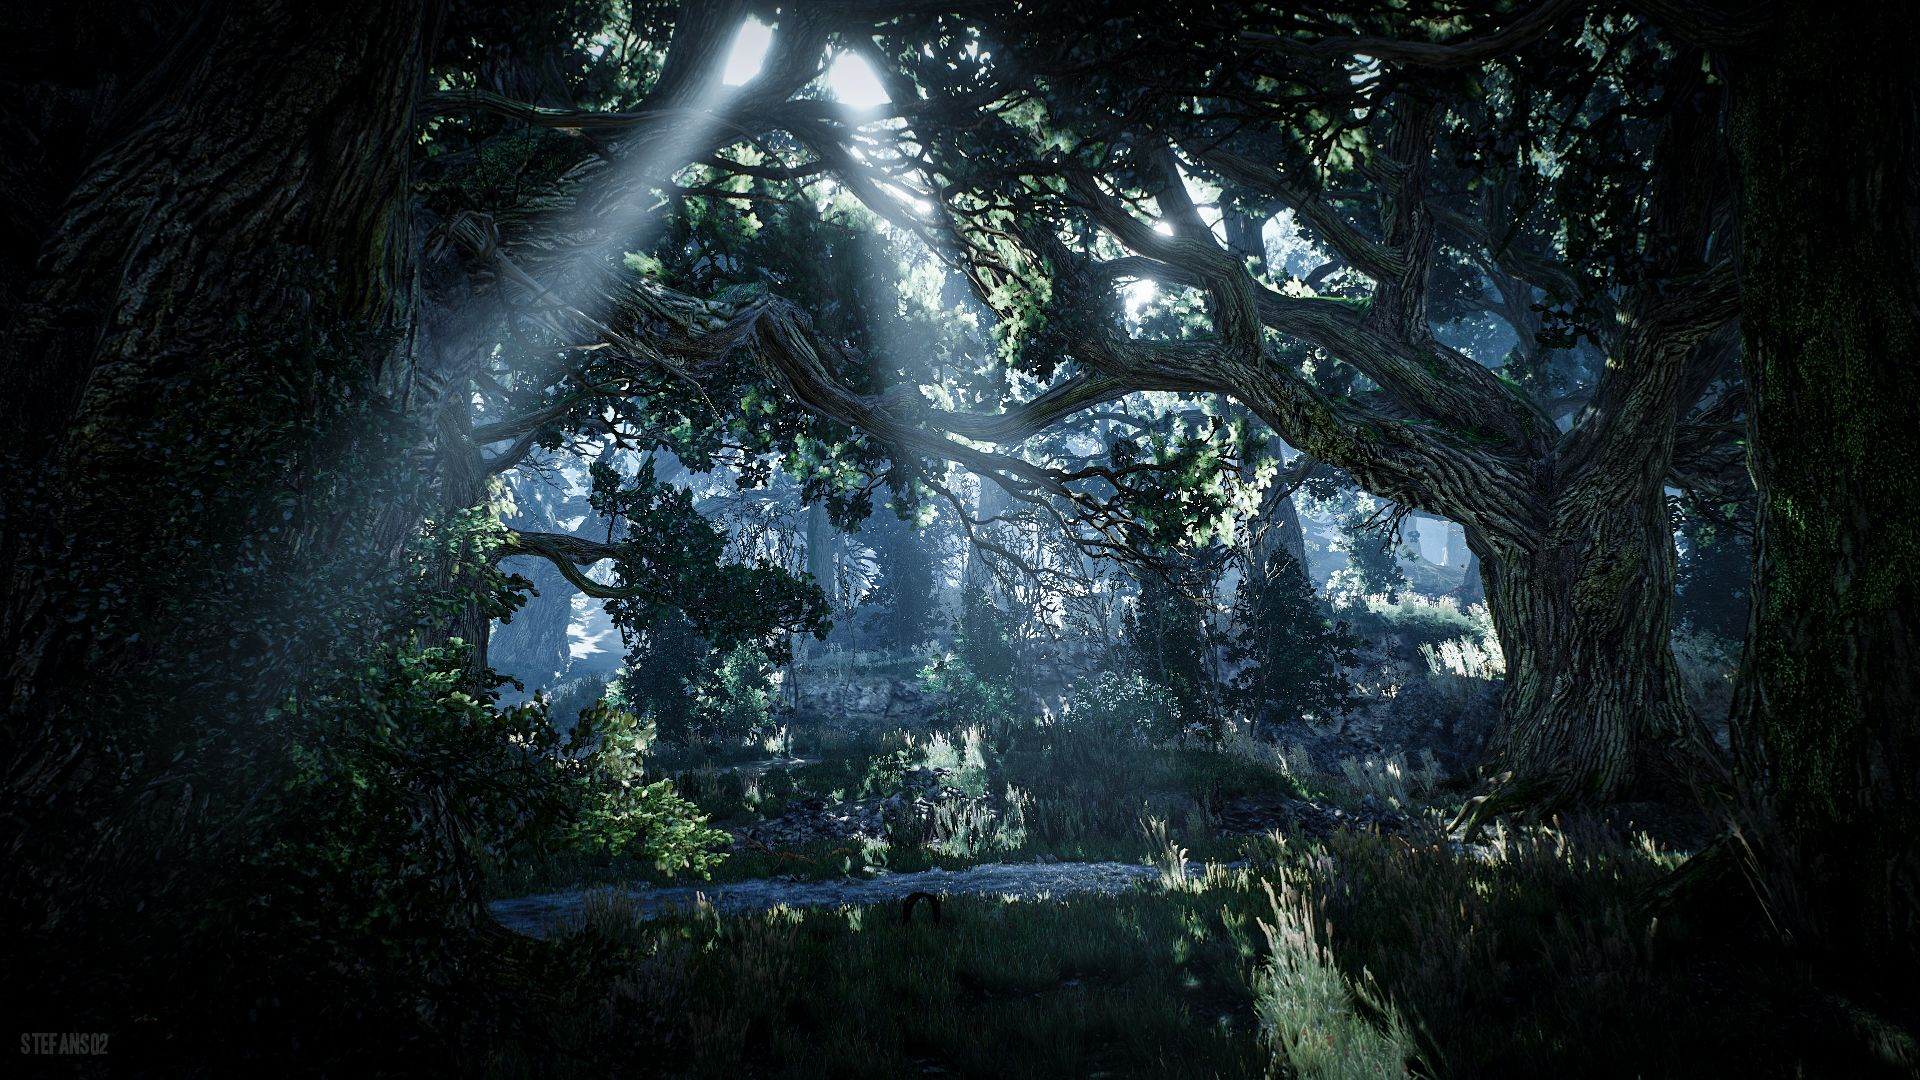 video game the witcher 3 wild hunt forest the witcher video gamevideo game the witcher 3 wild hunt forest the witcher video game wallpaper